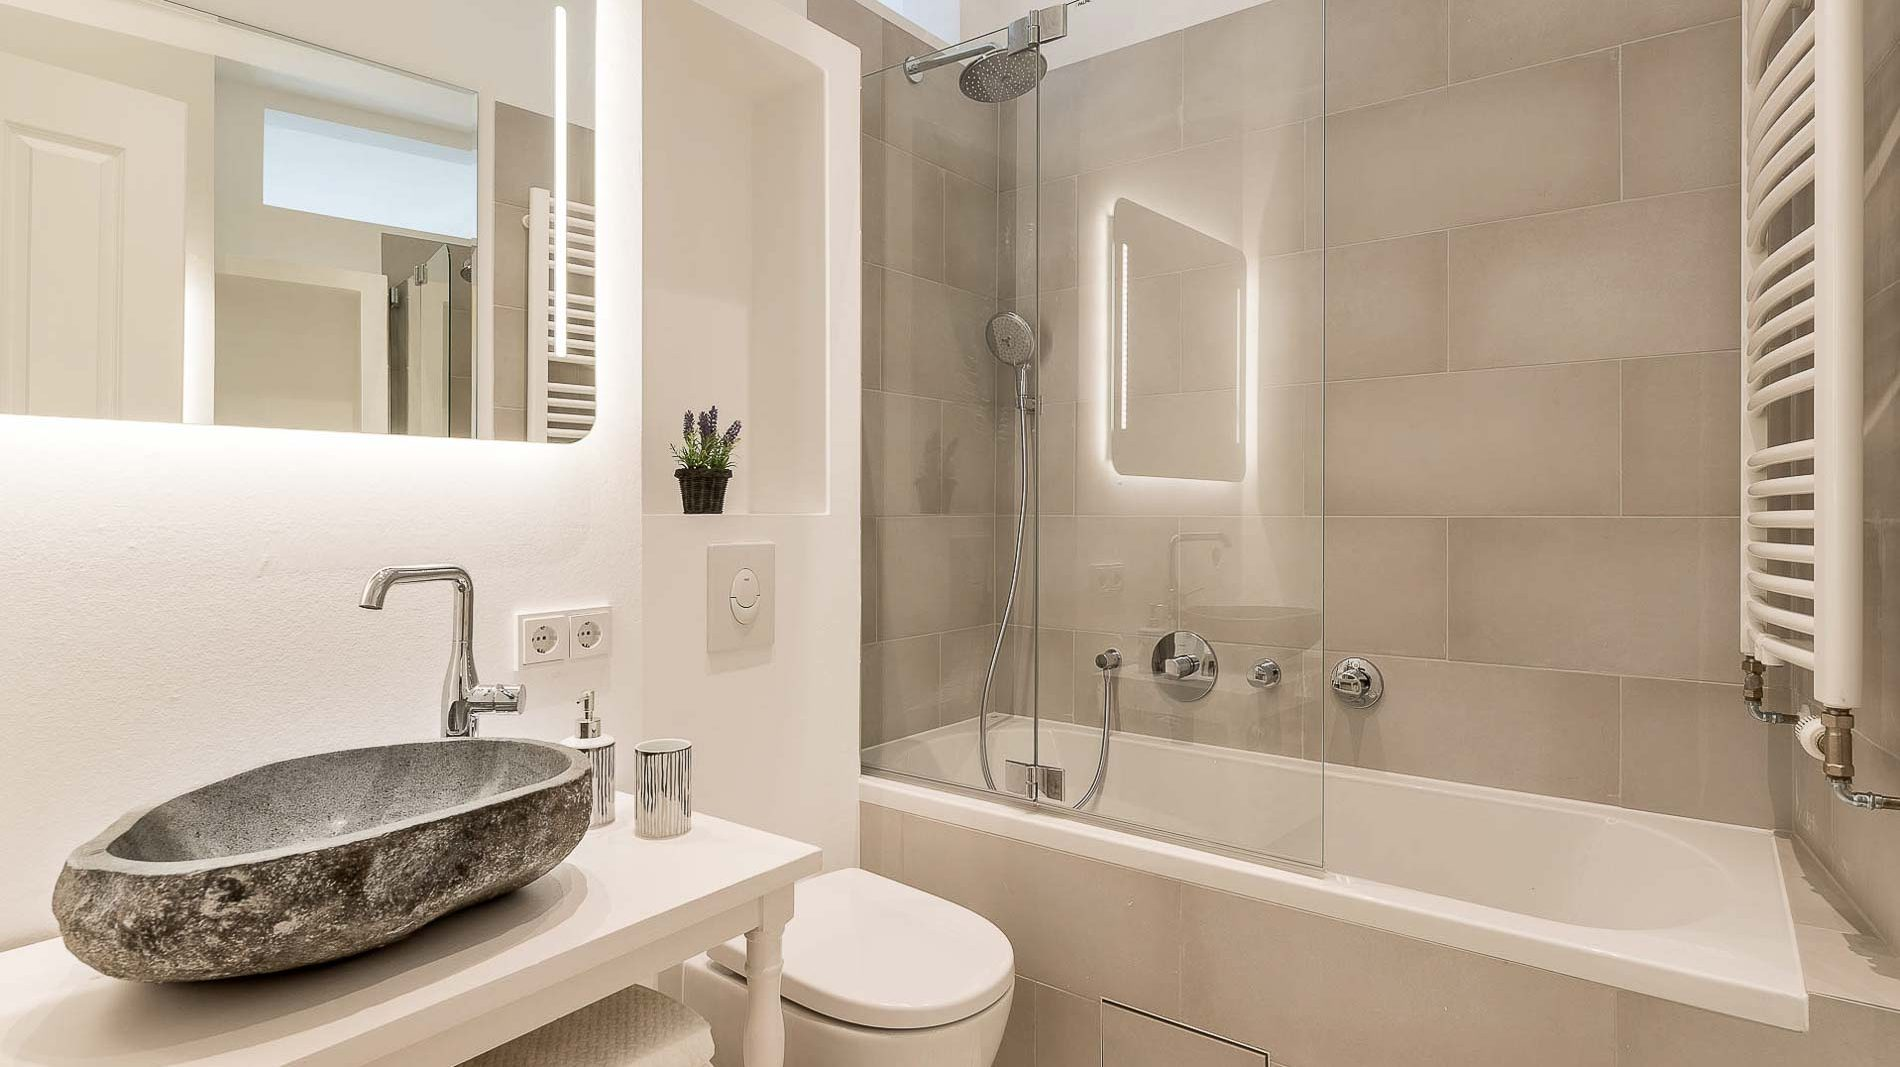 PrimePhoto - Mini Bathroom in reconstructed flat - Real Estate Photos